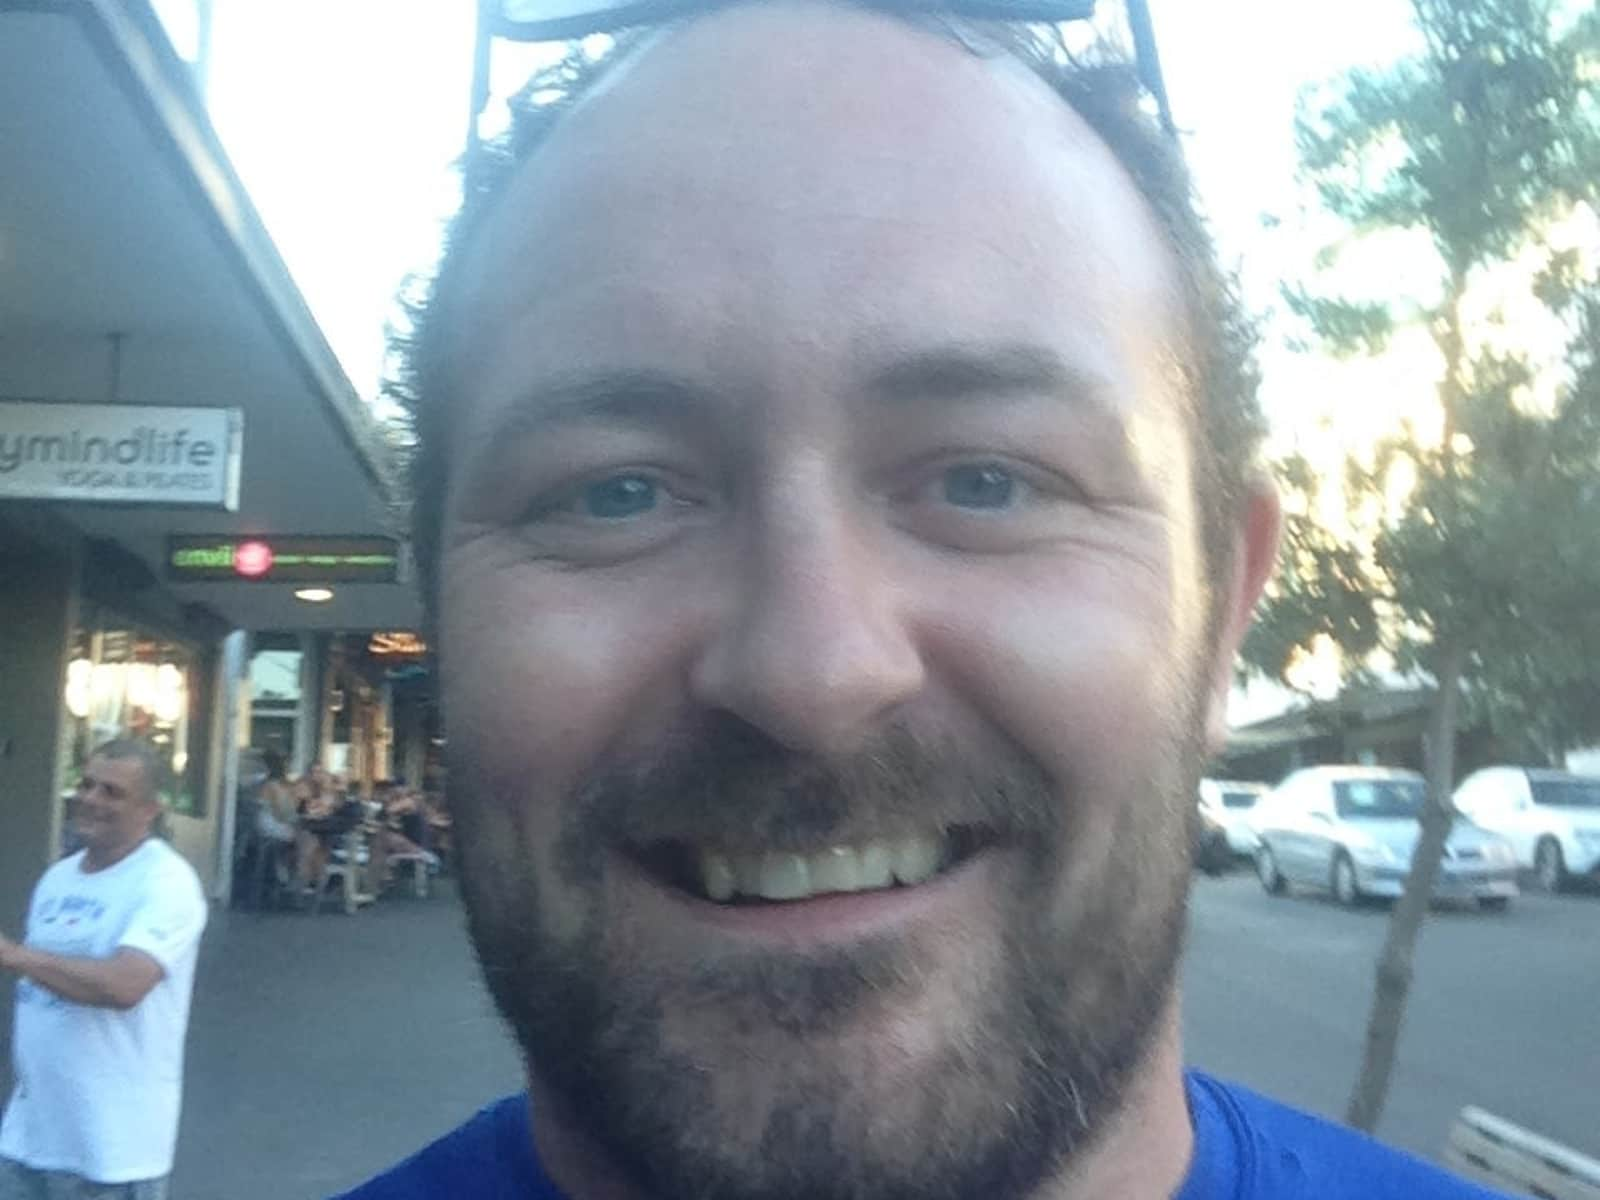 Robert from Sydney, New South Wales, Australia